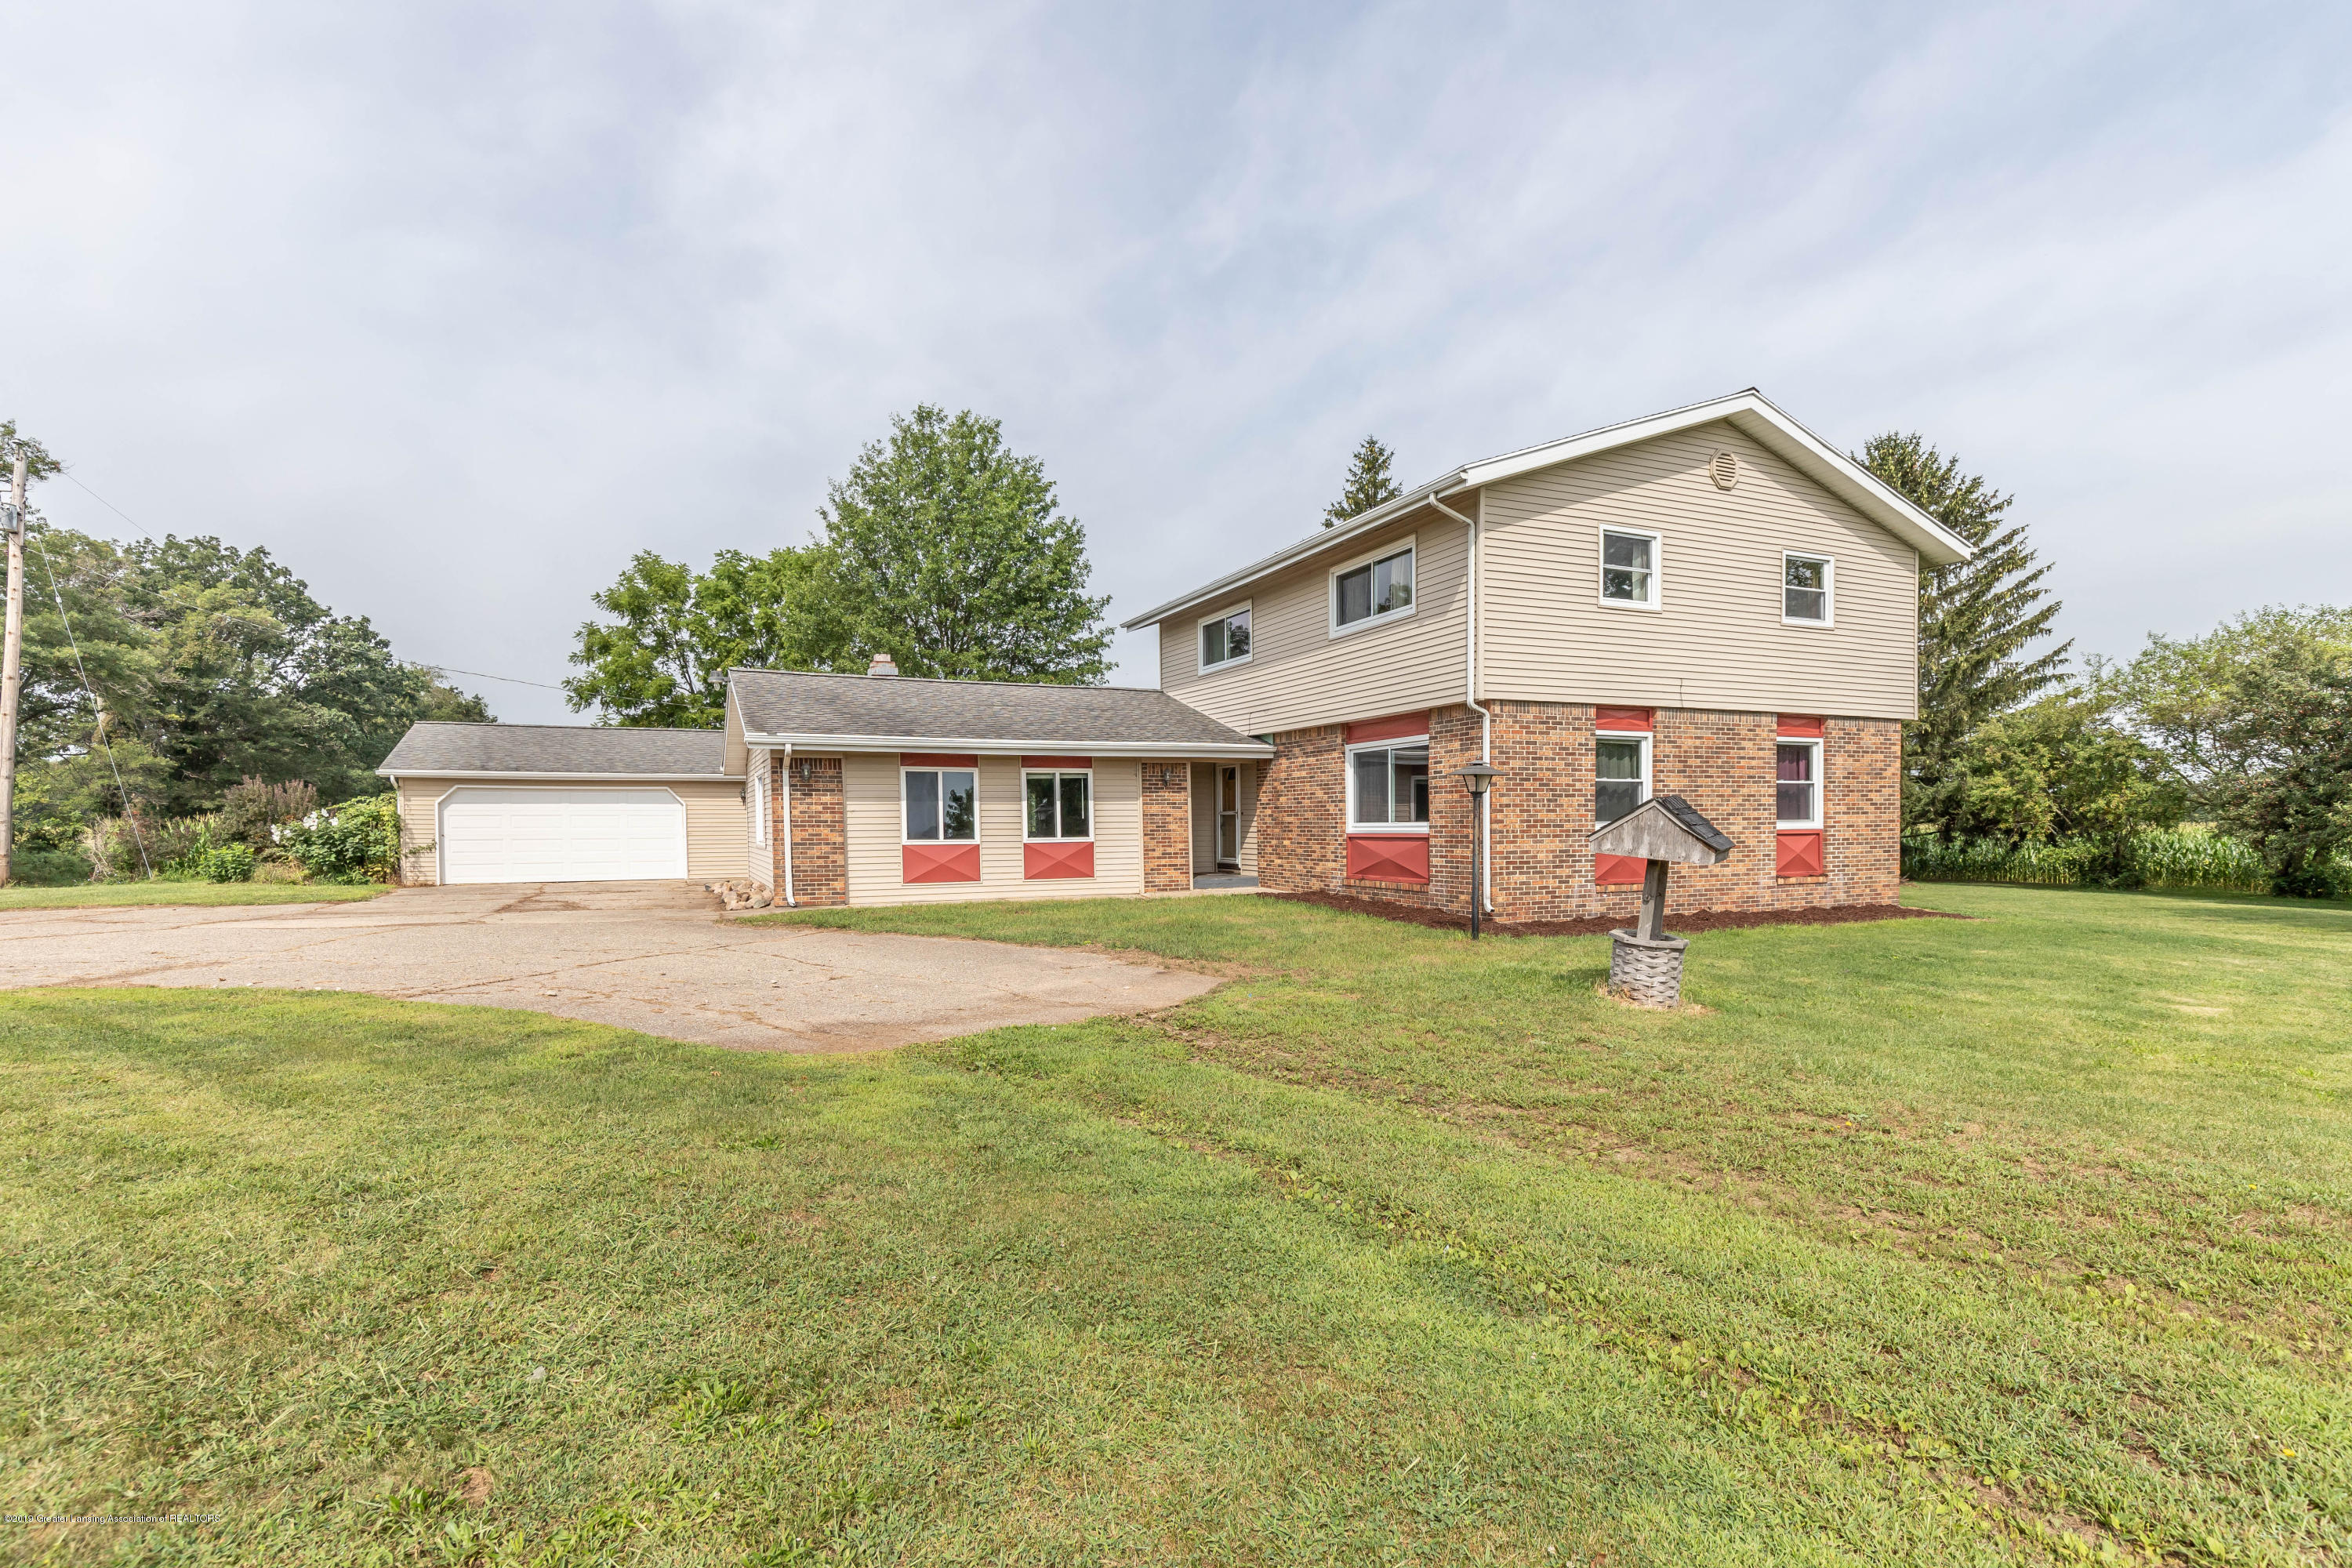 7819 Eaton Rapids Rd - FRONT - 1